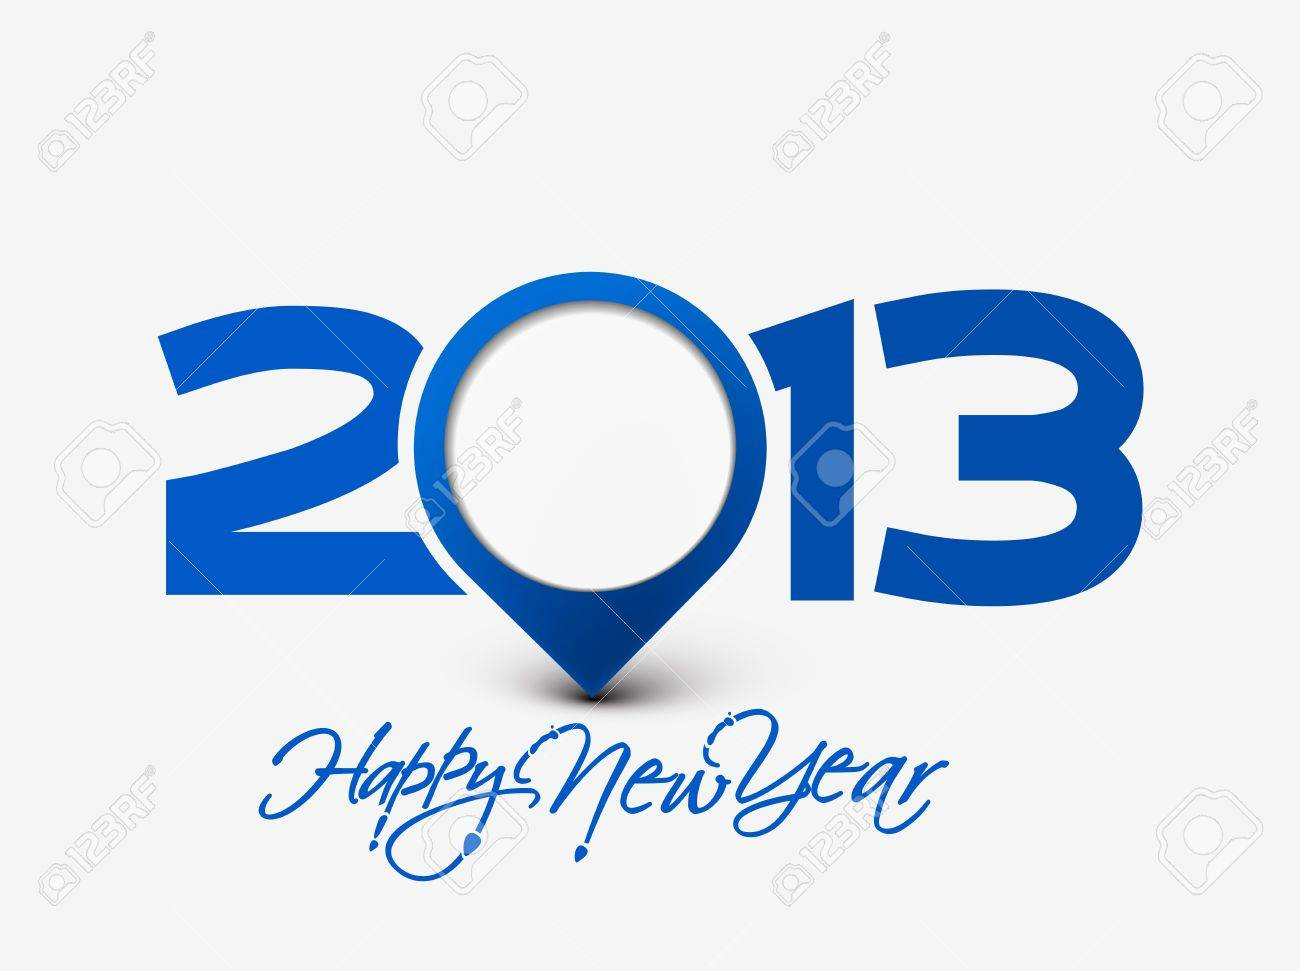 Happy new year 2013 celebration background for your posters design. Stock Vector - 16574987